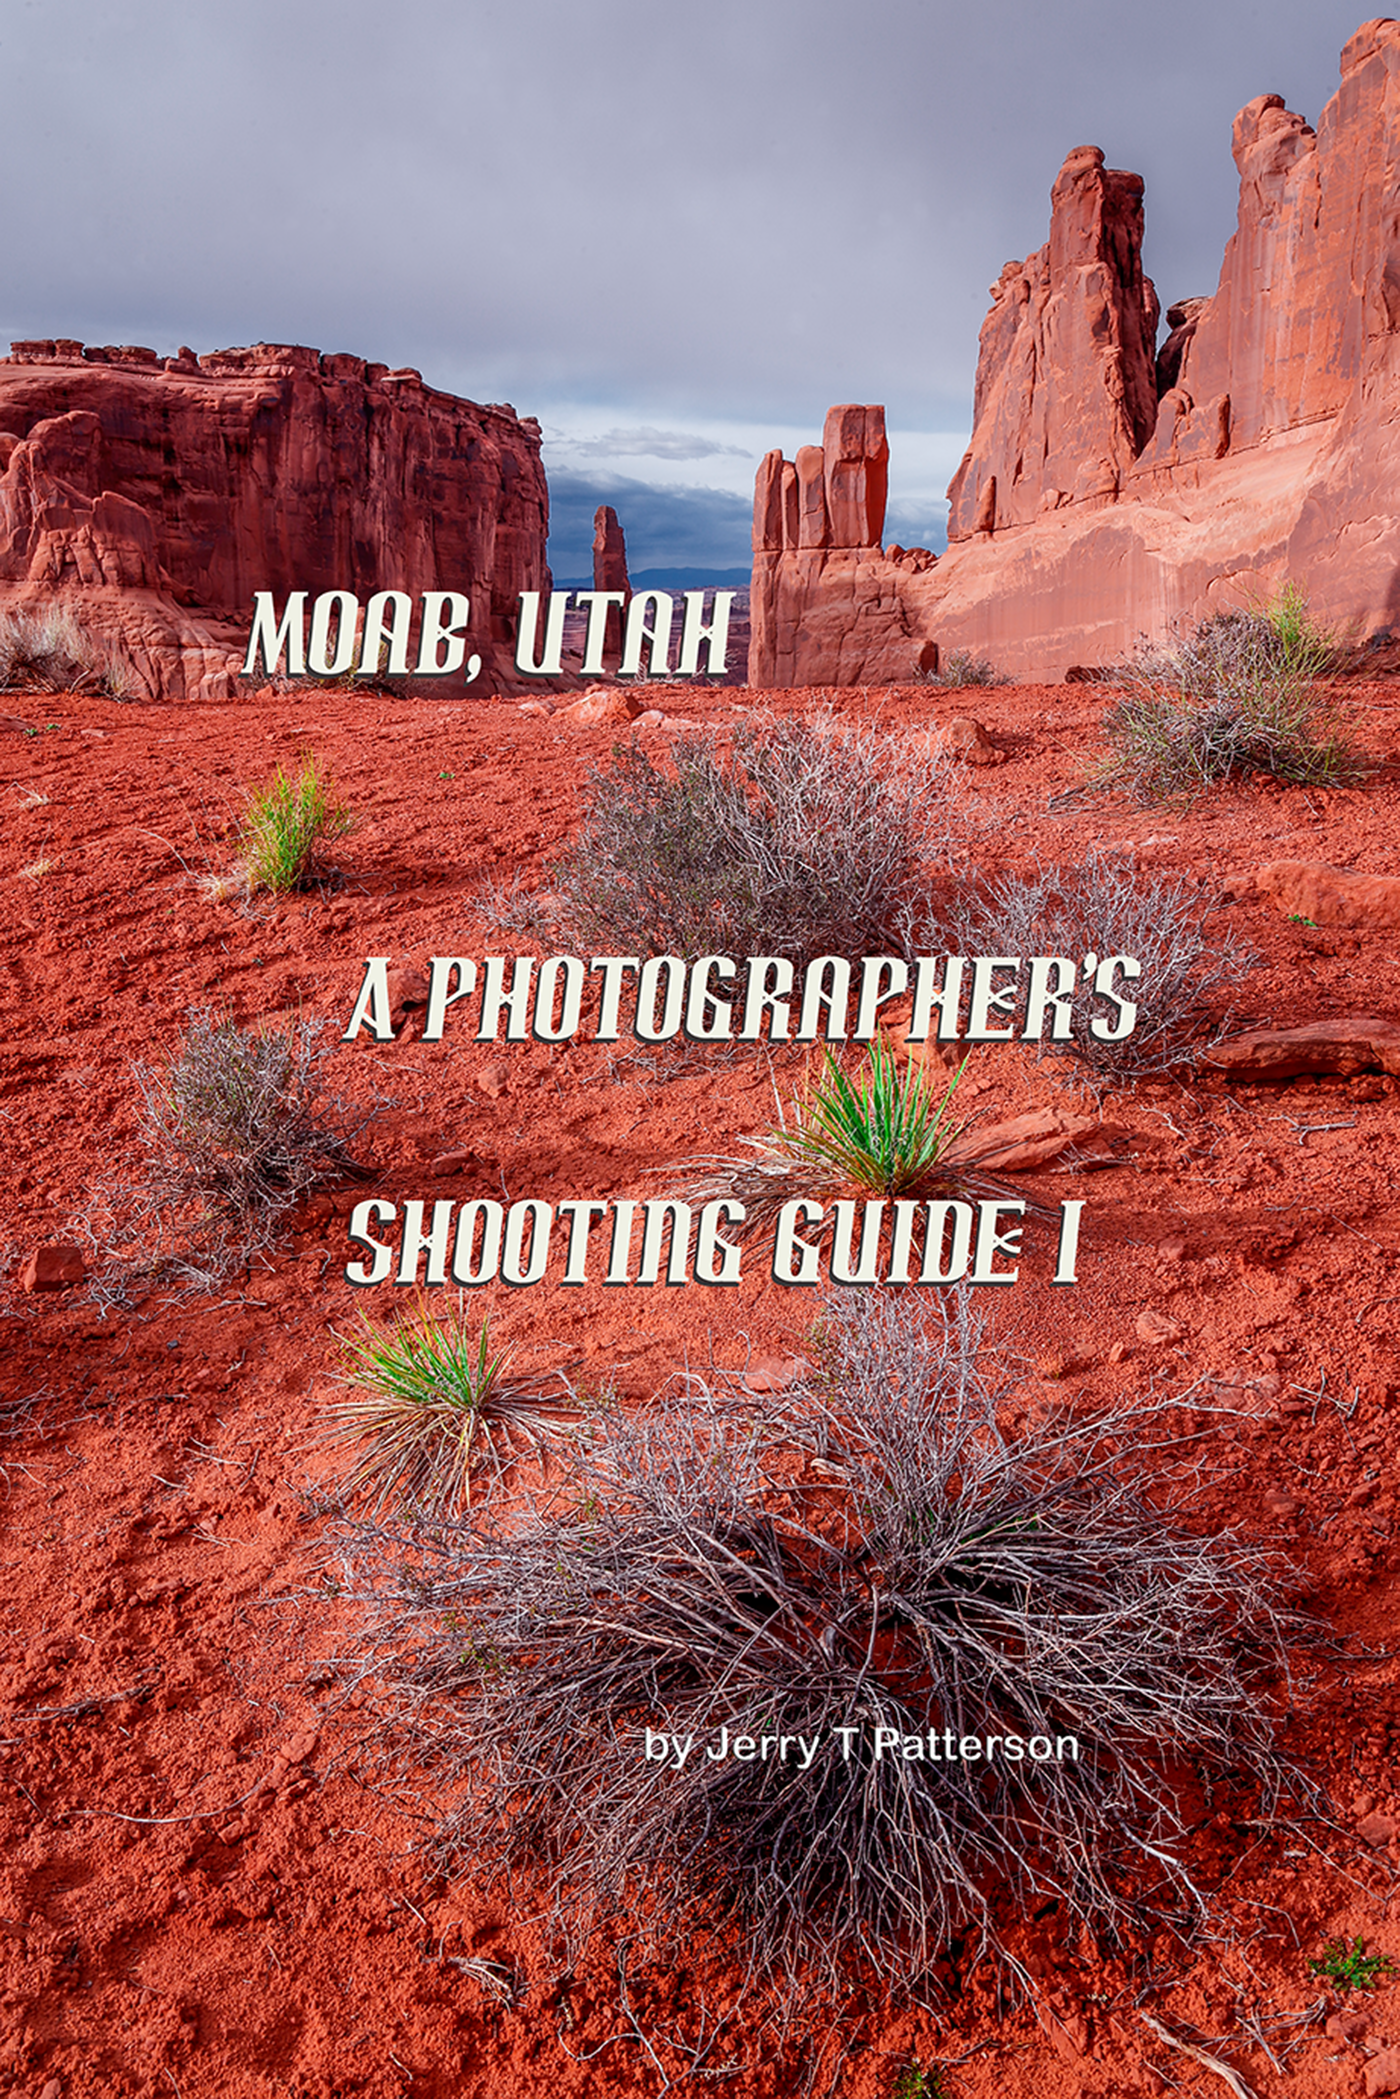 Jerry Patterson - Moab, Utah - A Photographer's Shooting Guide I